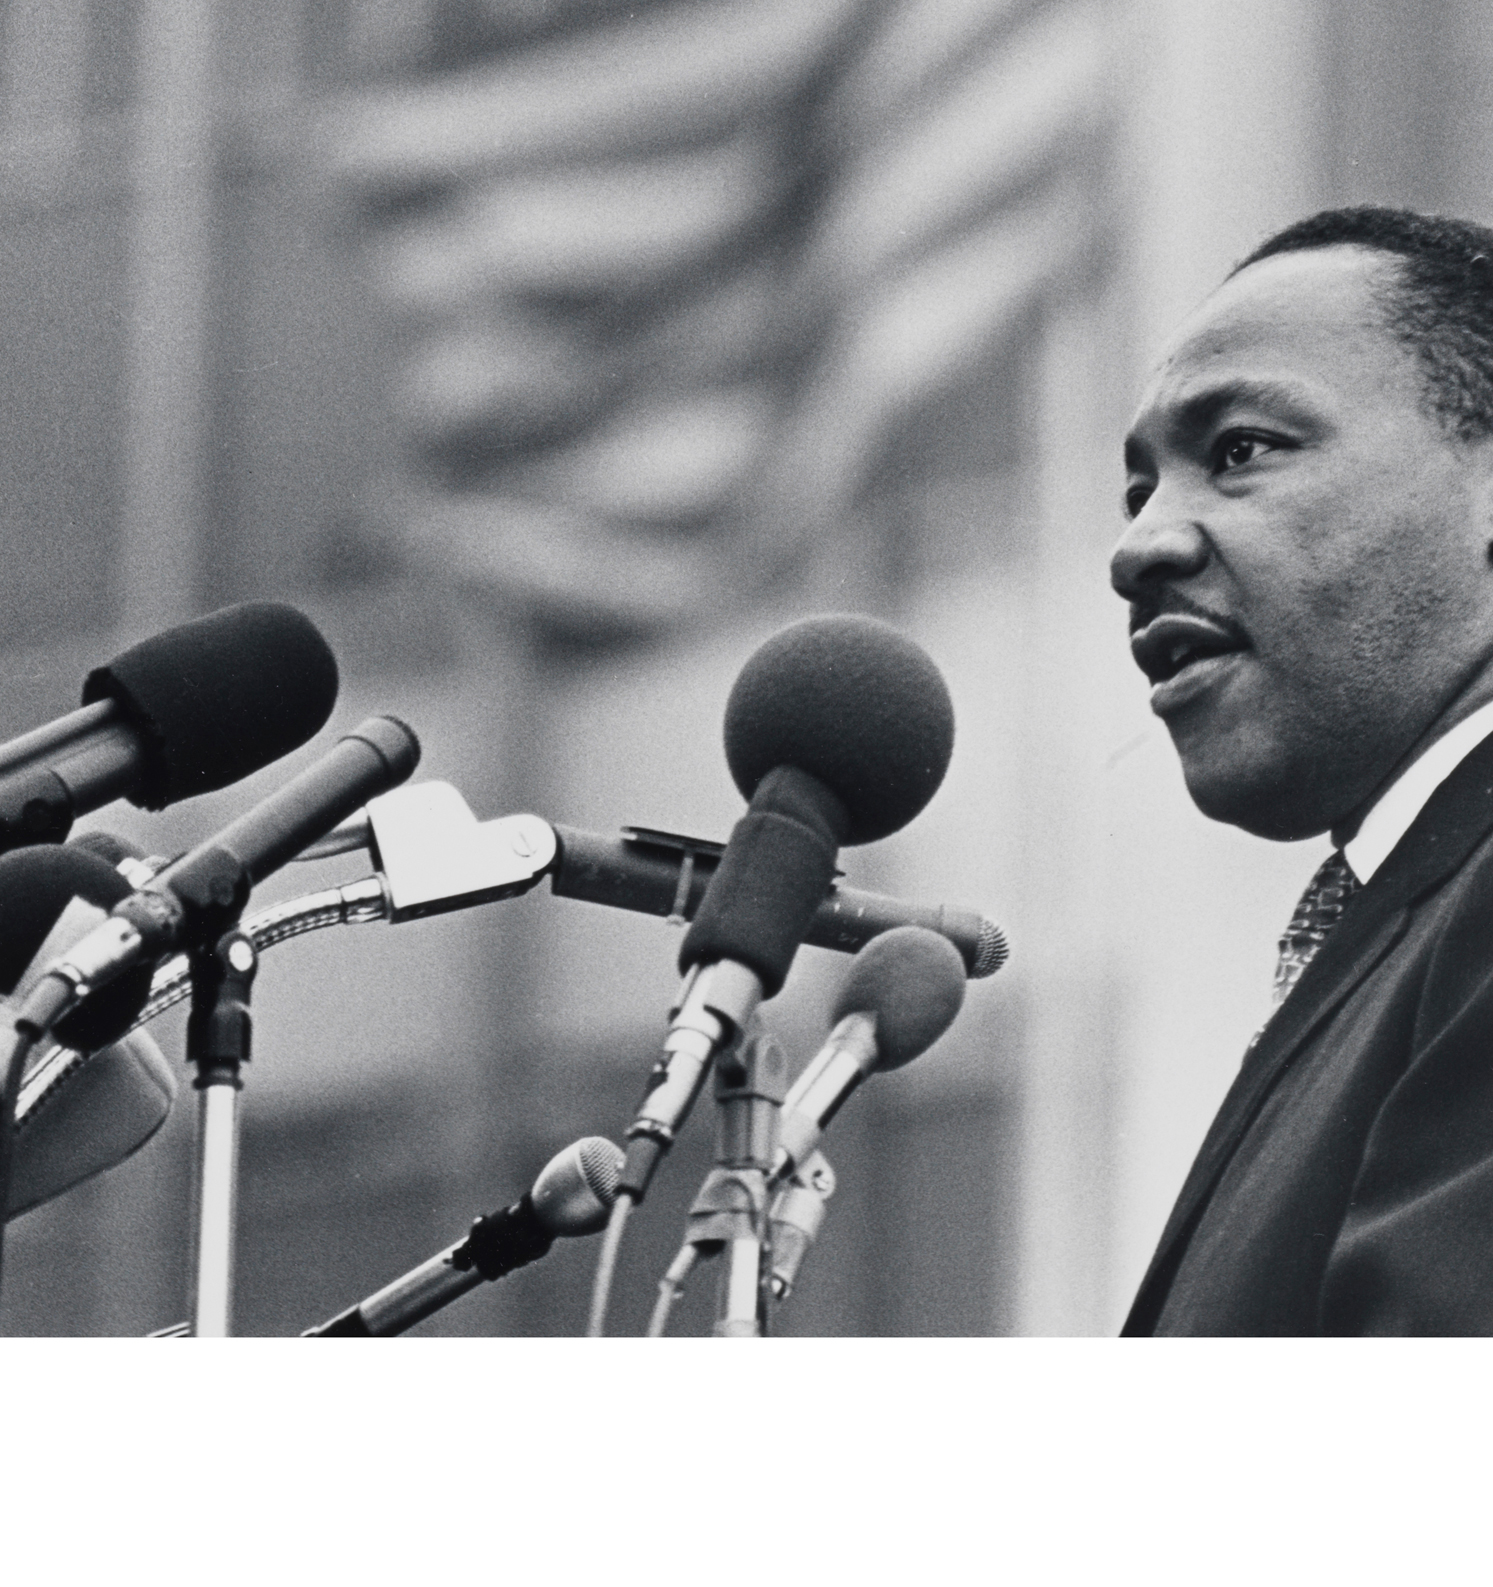 Image of Dr. Martin Luther King Jr. speaking into several microphones.